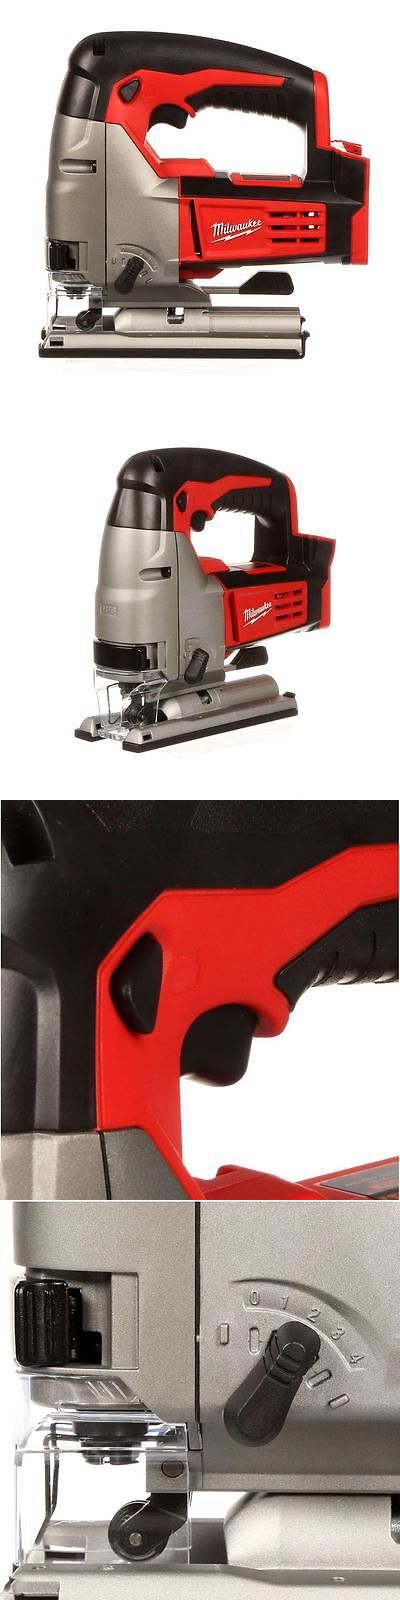 Jig and Scroll Saws 122834: Milwaukee 2645-20 M18 18V Li-Ion Cordless Jigsaw (Bare Tool) -> BUY IT NOW ONLY: $129 on eBay!